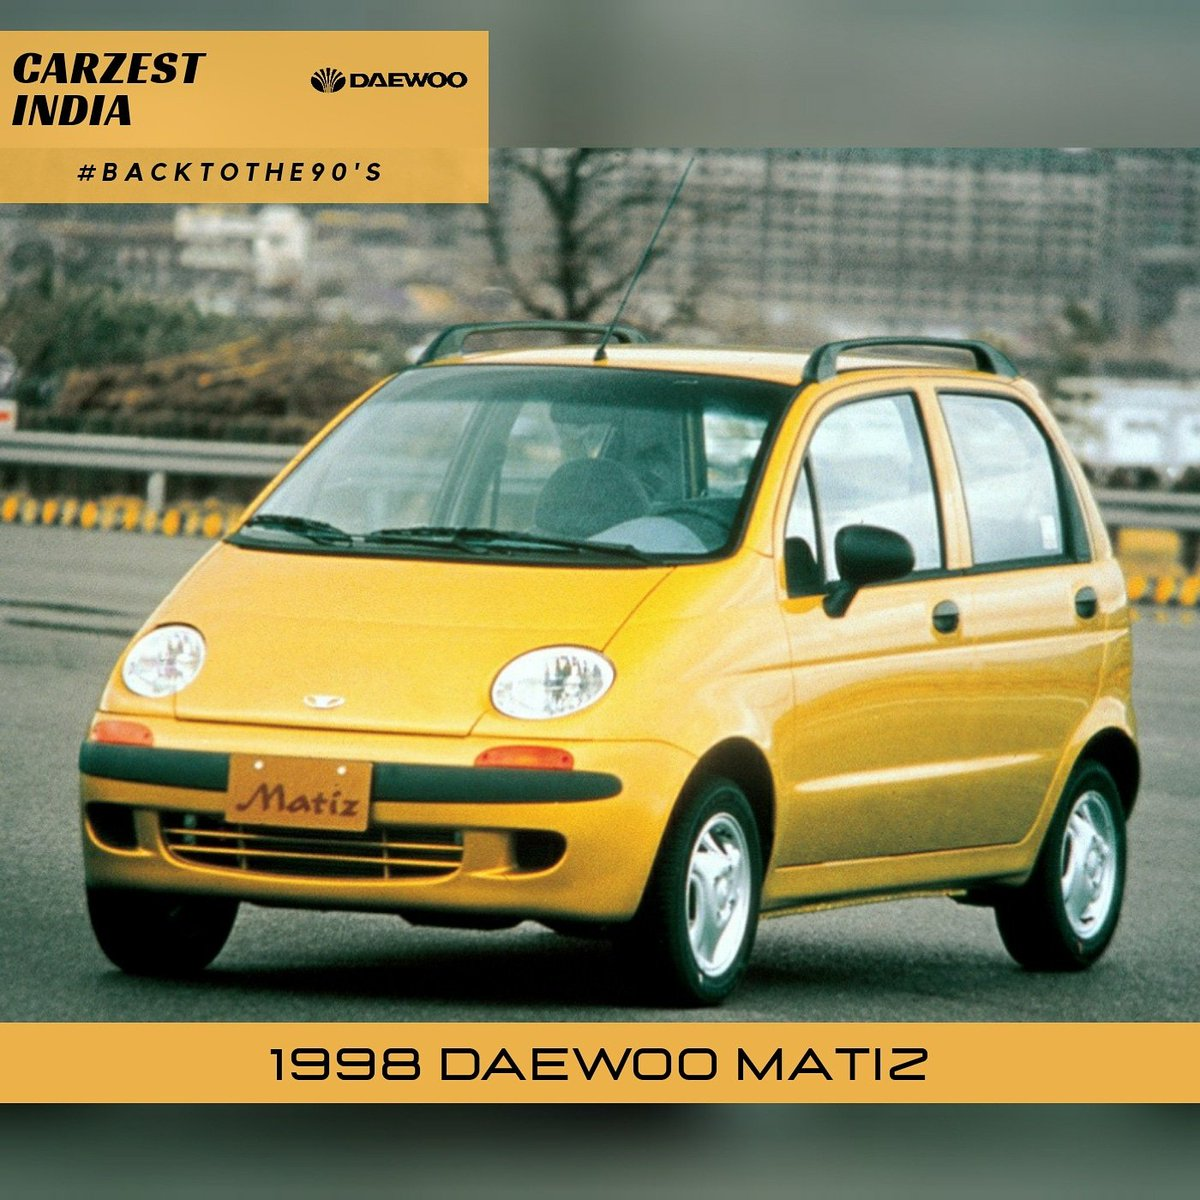 Back to the 90s - 37 Daewoo Matiz Matiz would have easily surpassed other hatchbacks at that time, had not been a financial crisis hit the brand at a wrong time..  Matiz was SUCH A WONDERFUL car & people here started loving it until the crisis hit! #DaewooMatiz #Matiz #Carpic.twitter.com/aMsAsaxXqz